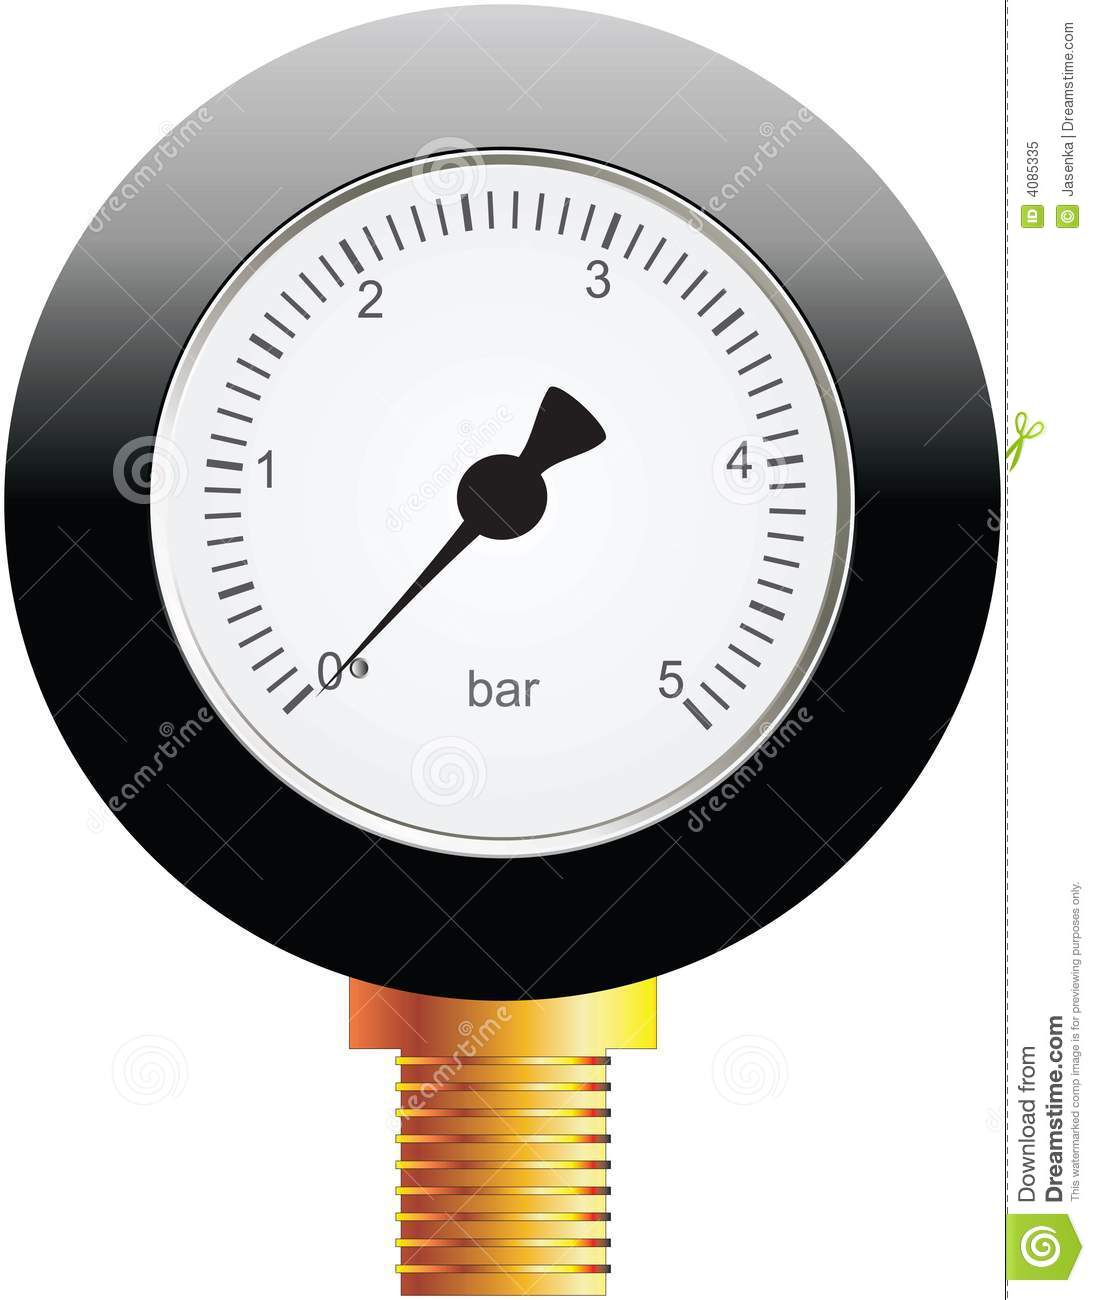 Pressure Measuring Instruments : Instrument for measuring pressure stock vector